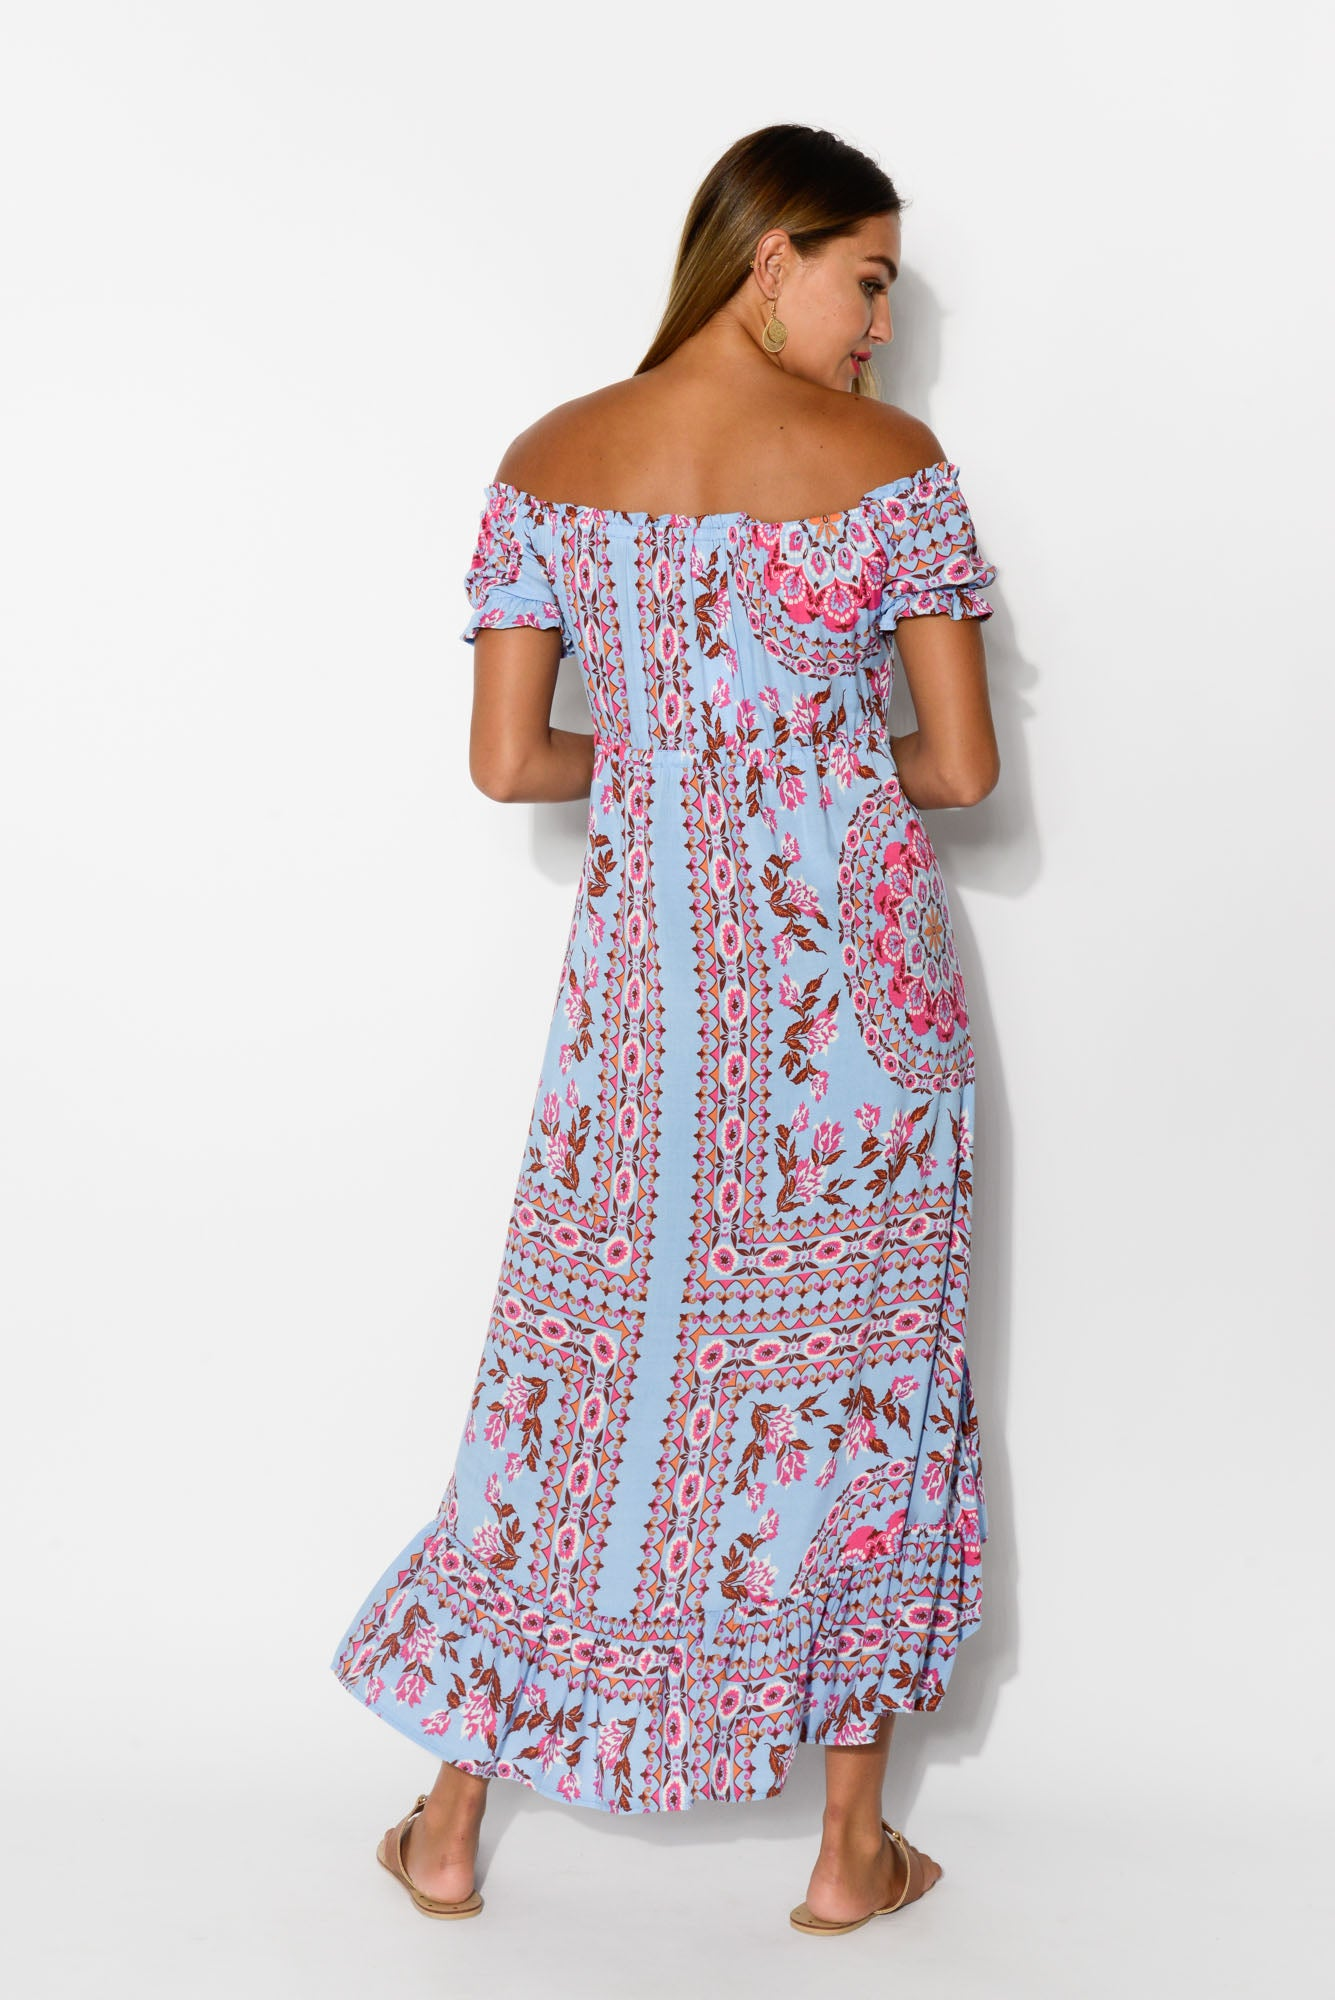 Ellie Blue Floral Off Shoulder Dress - Blue Bungalow